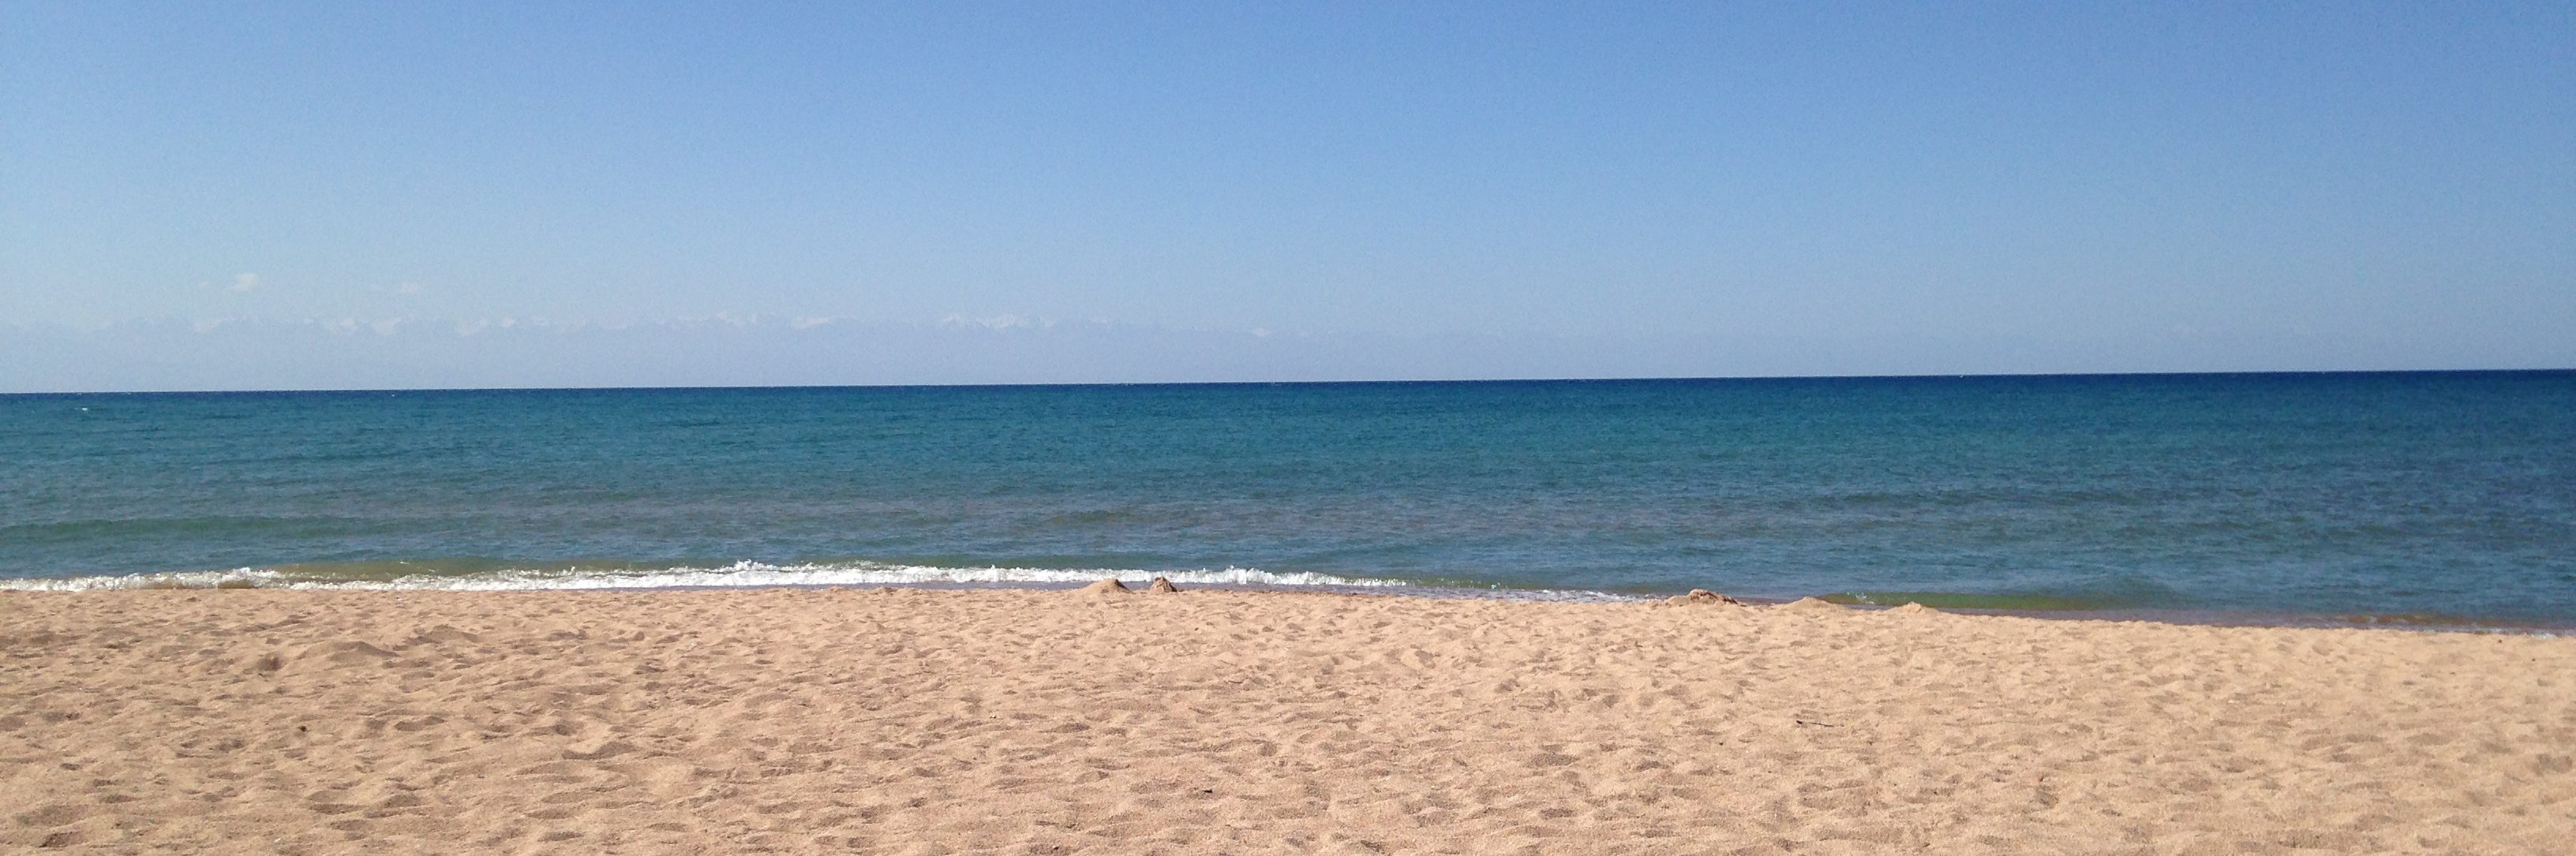 picture of a calm beach